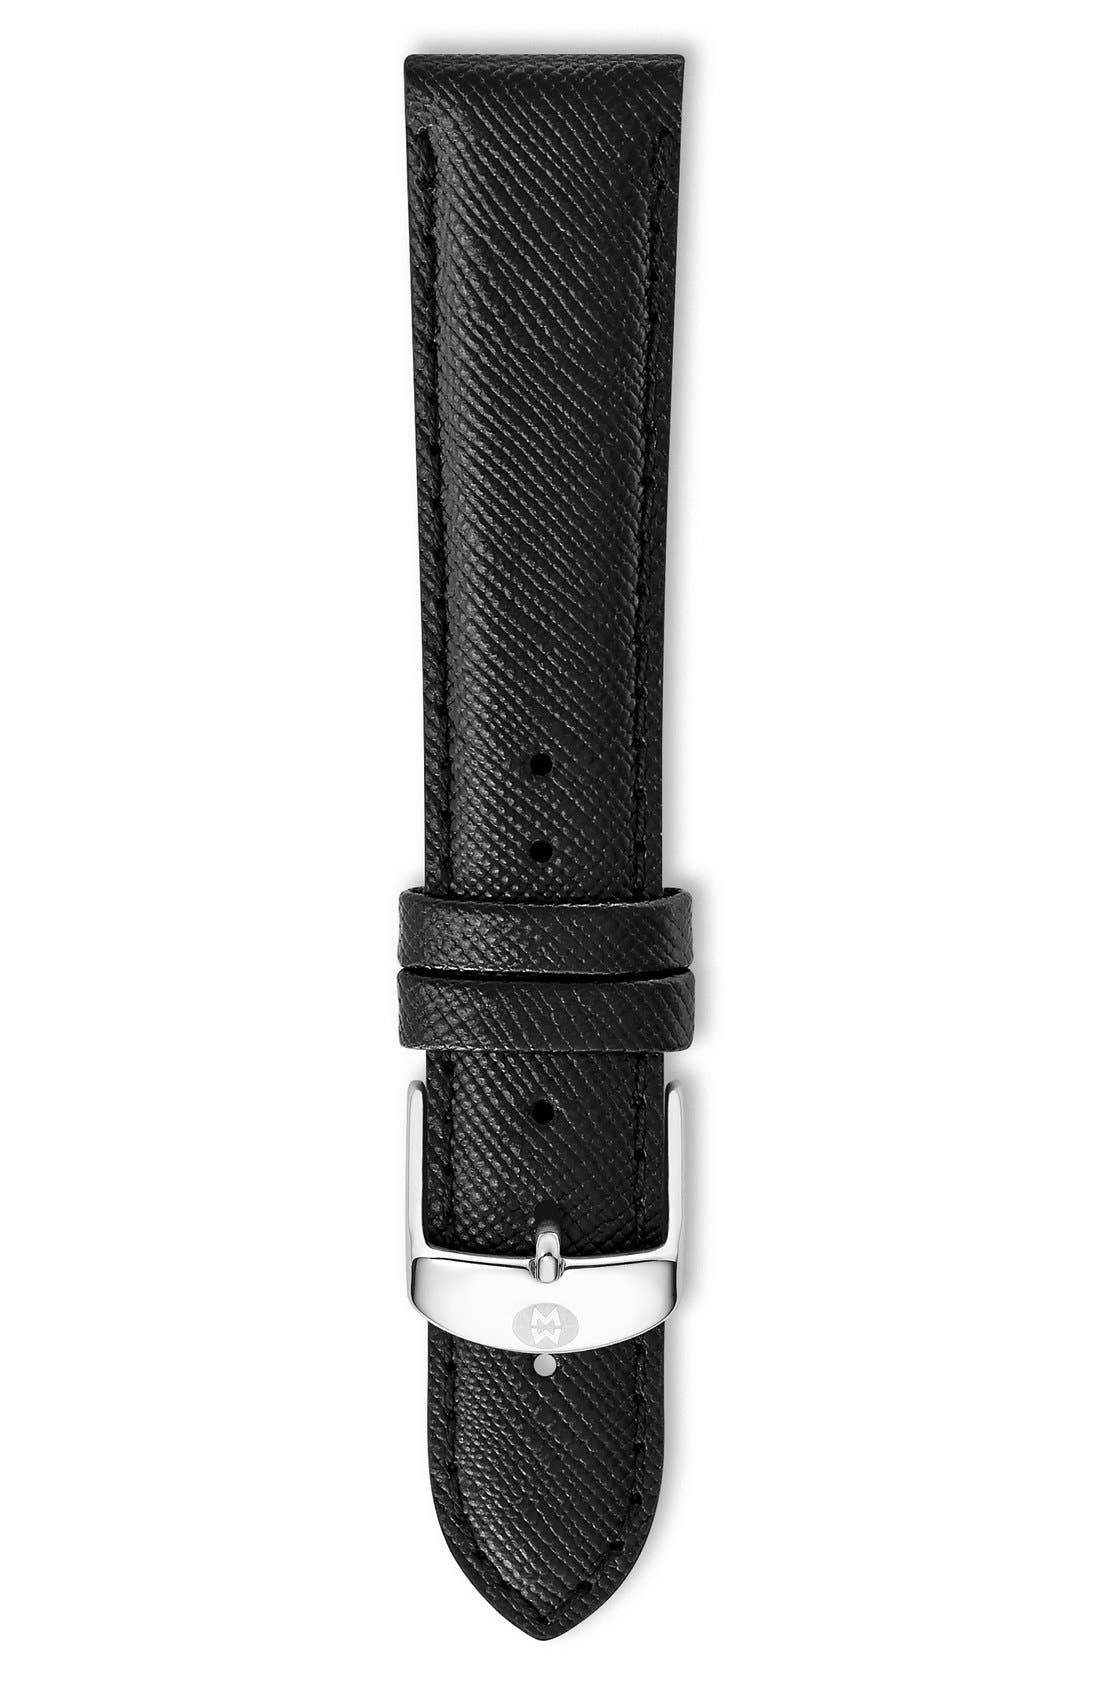 16mm Saffiano Leather Watch Strap,                         Main,                         color,